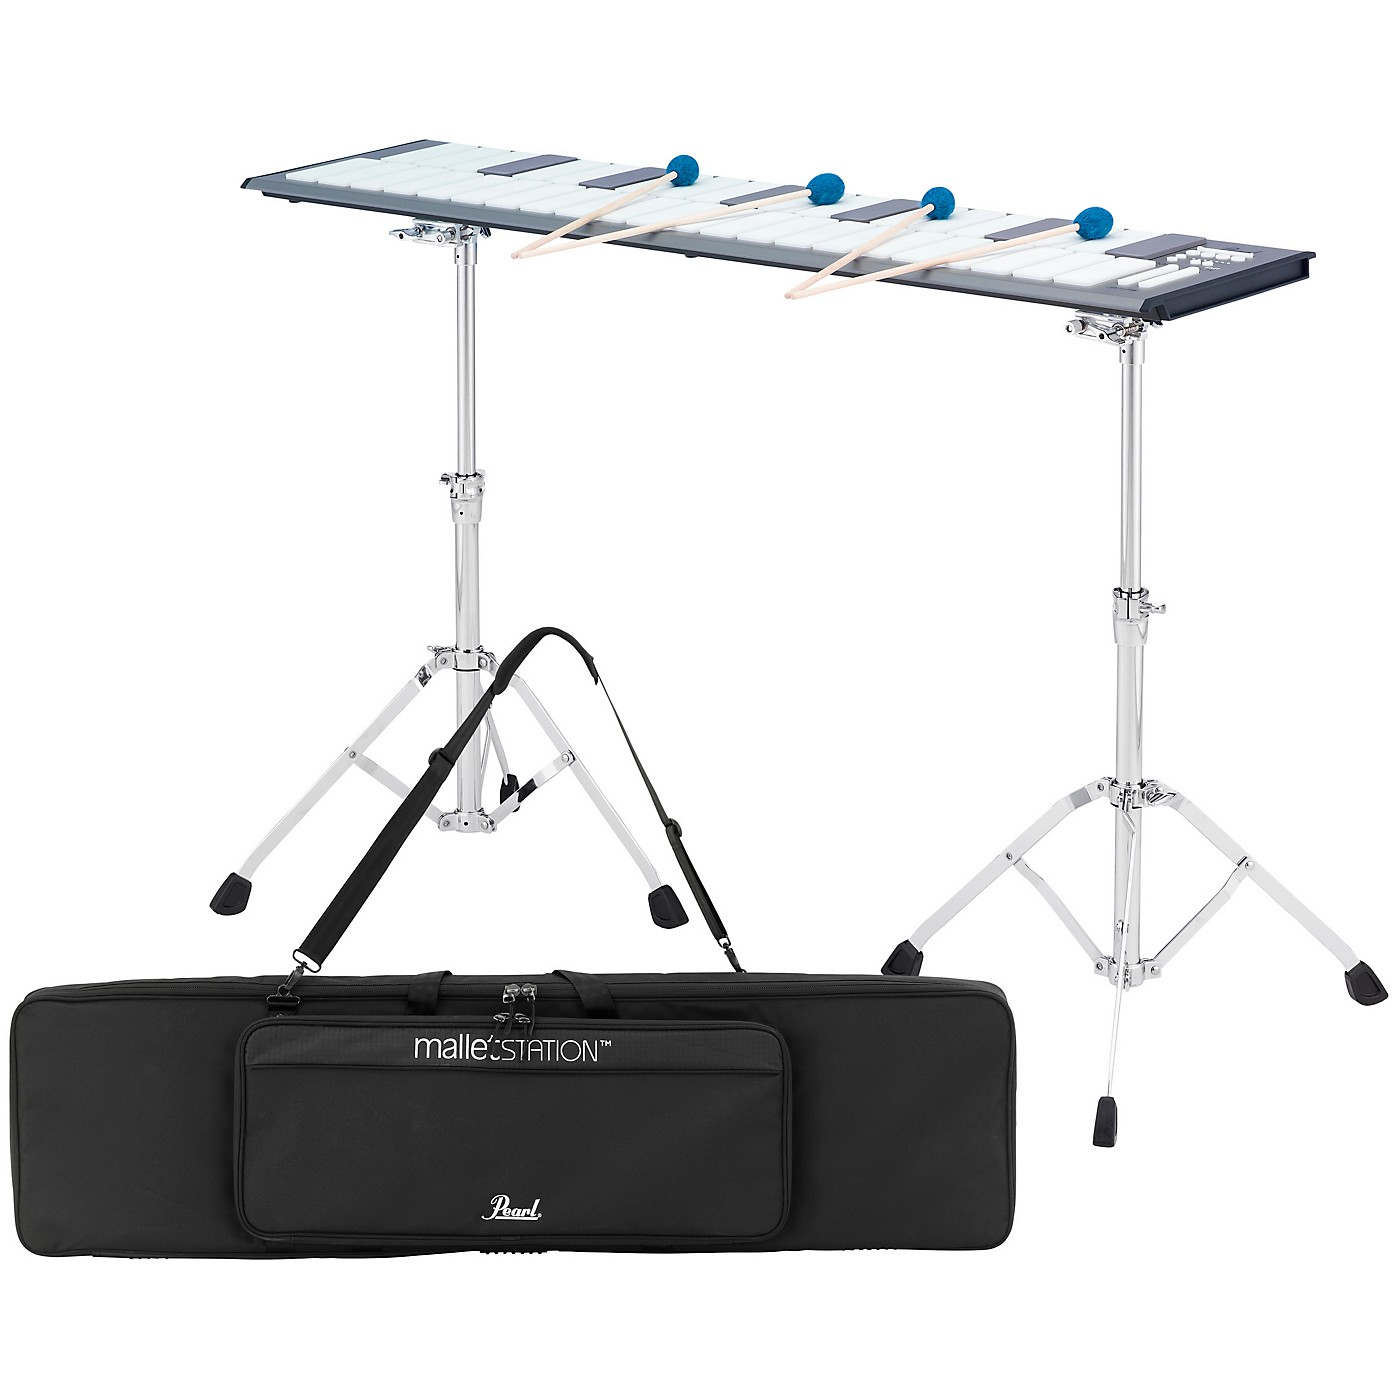 Pearl malletSTATION 3.0 Octave Adjustable Range Electronic Mallet Controller with Bag, Stands, and Mounts thumbnail